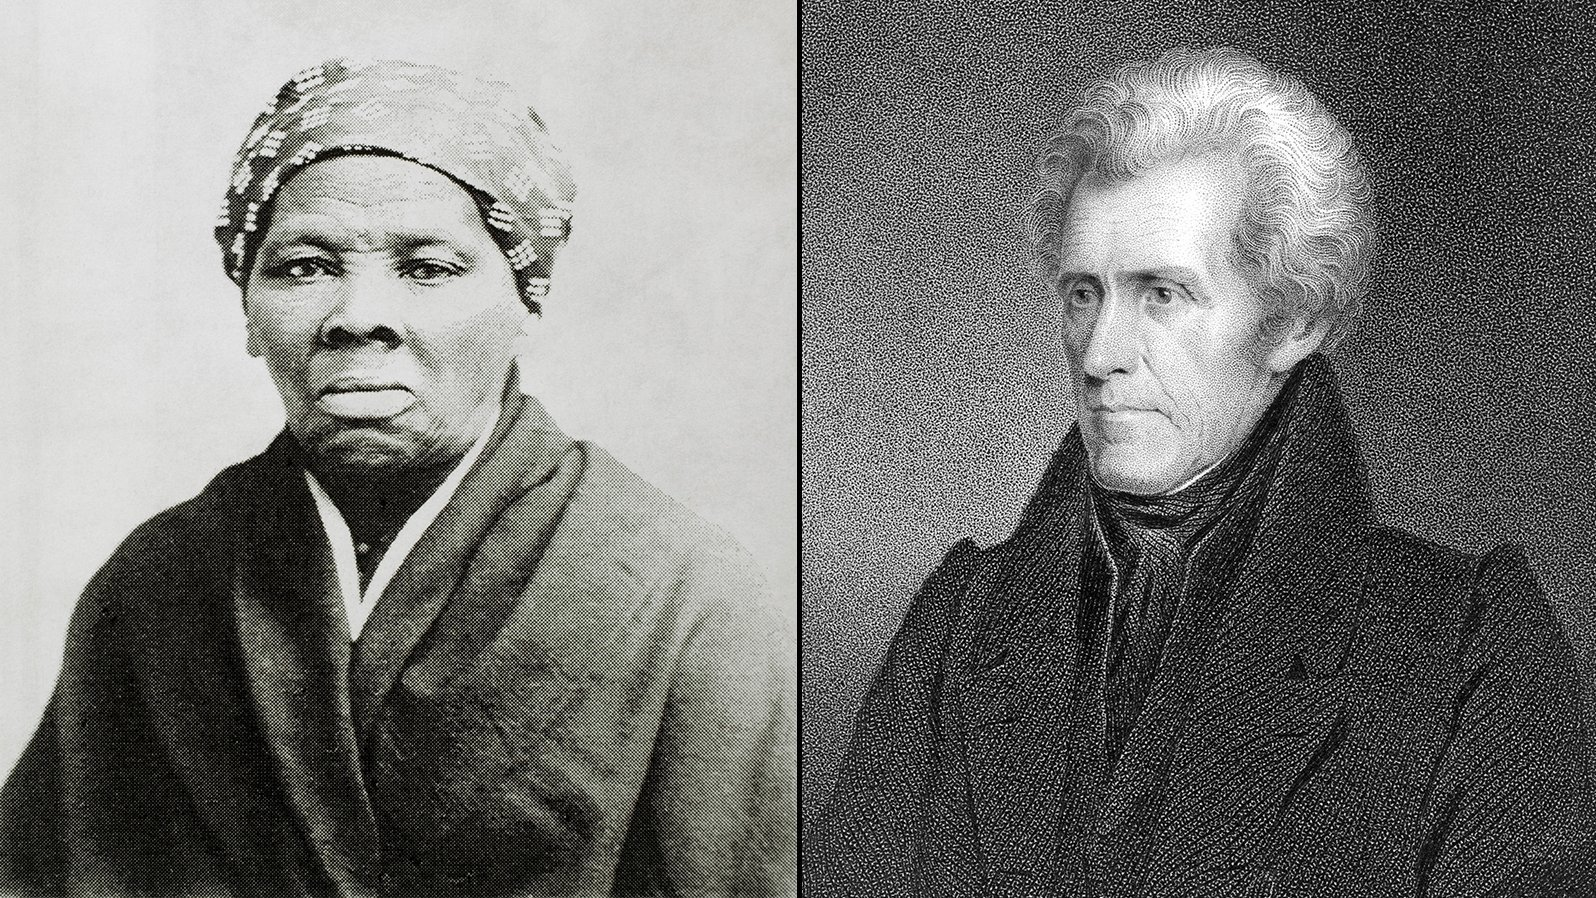 On left, abolitionist heroine Harriet Tubman is pictured. On right, former President Andrew Jackson appears. (Credit: Getty Images via CNN)